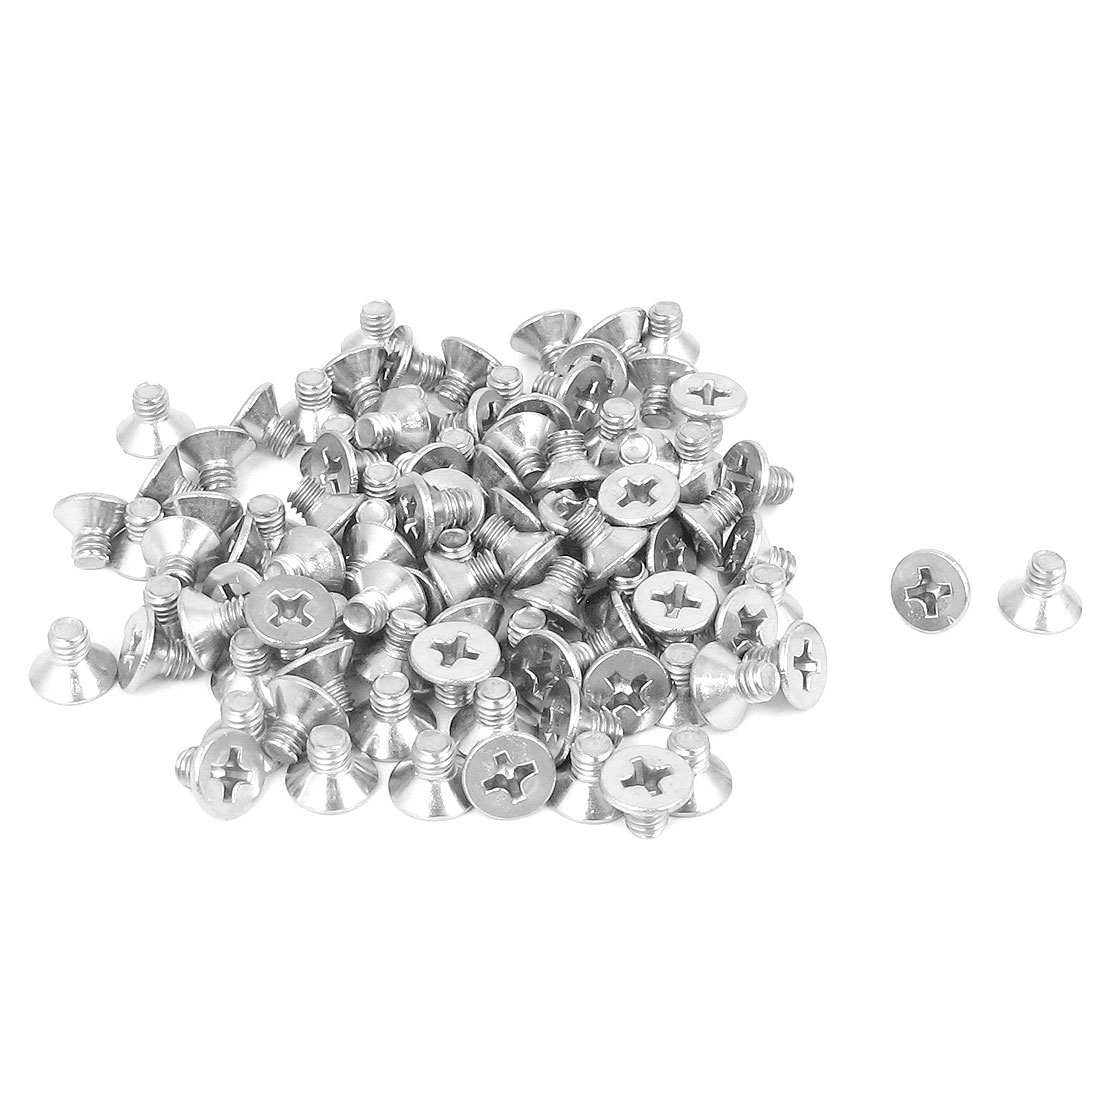 M4 x 6mm Metric Phillips Flat Head Countersunk Bolts Machine Screws 100pcs